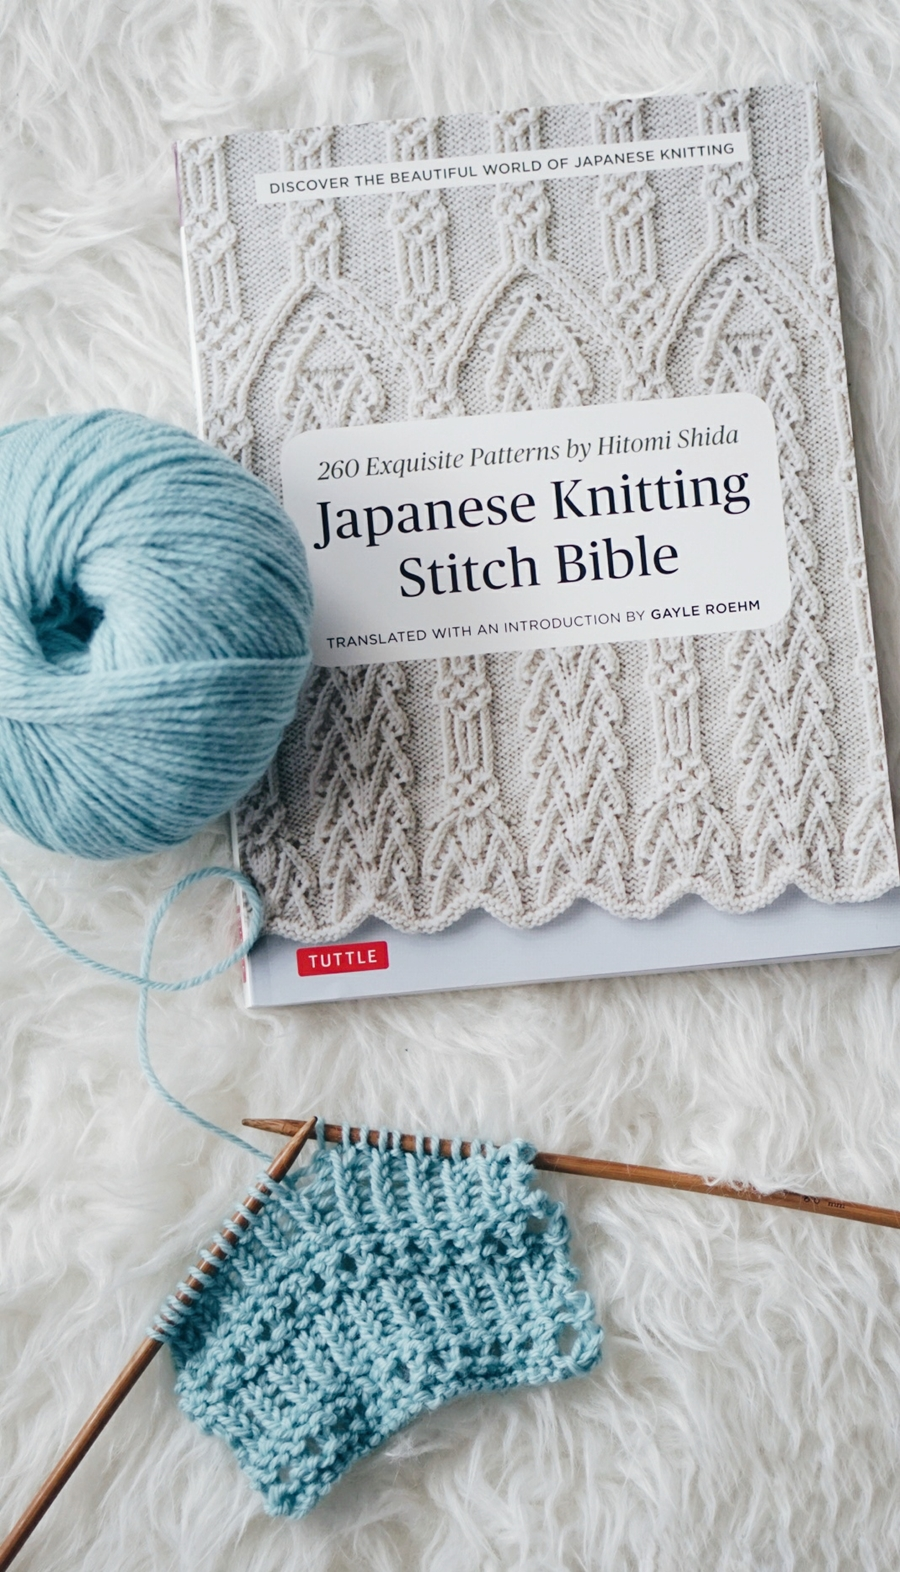 JAPANESE KNITTING STITCH BIBLE REVIEW